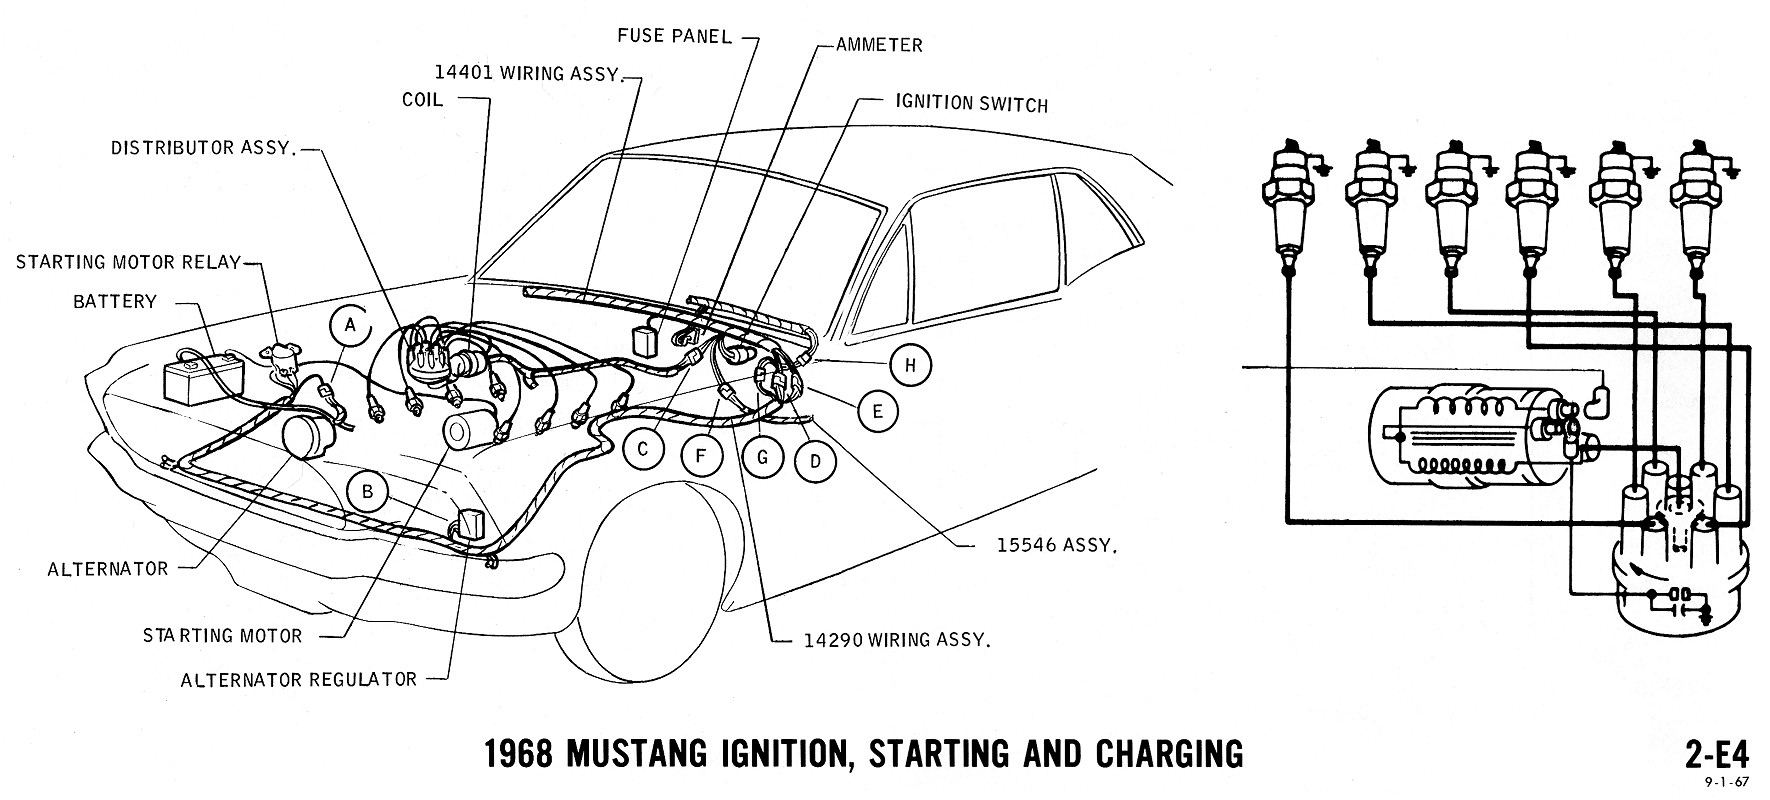 hight resolution of 1968 mustang wiring diagrams and vacuum schematics average joe 68 ford mustang alternator wiring diagram